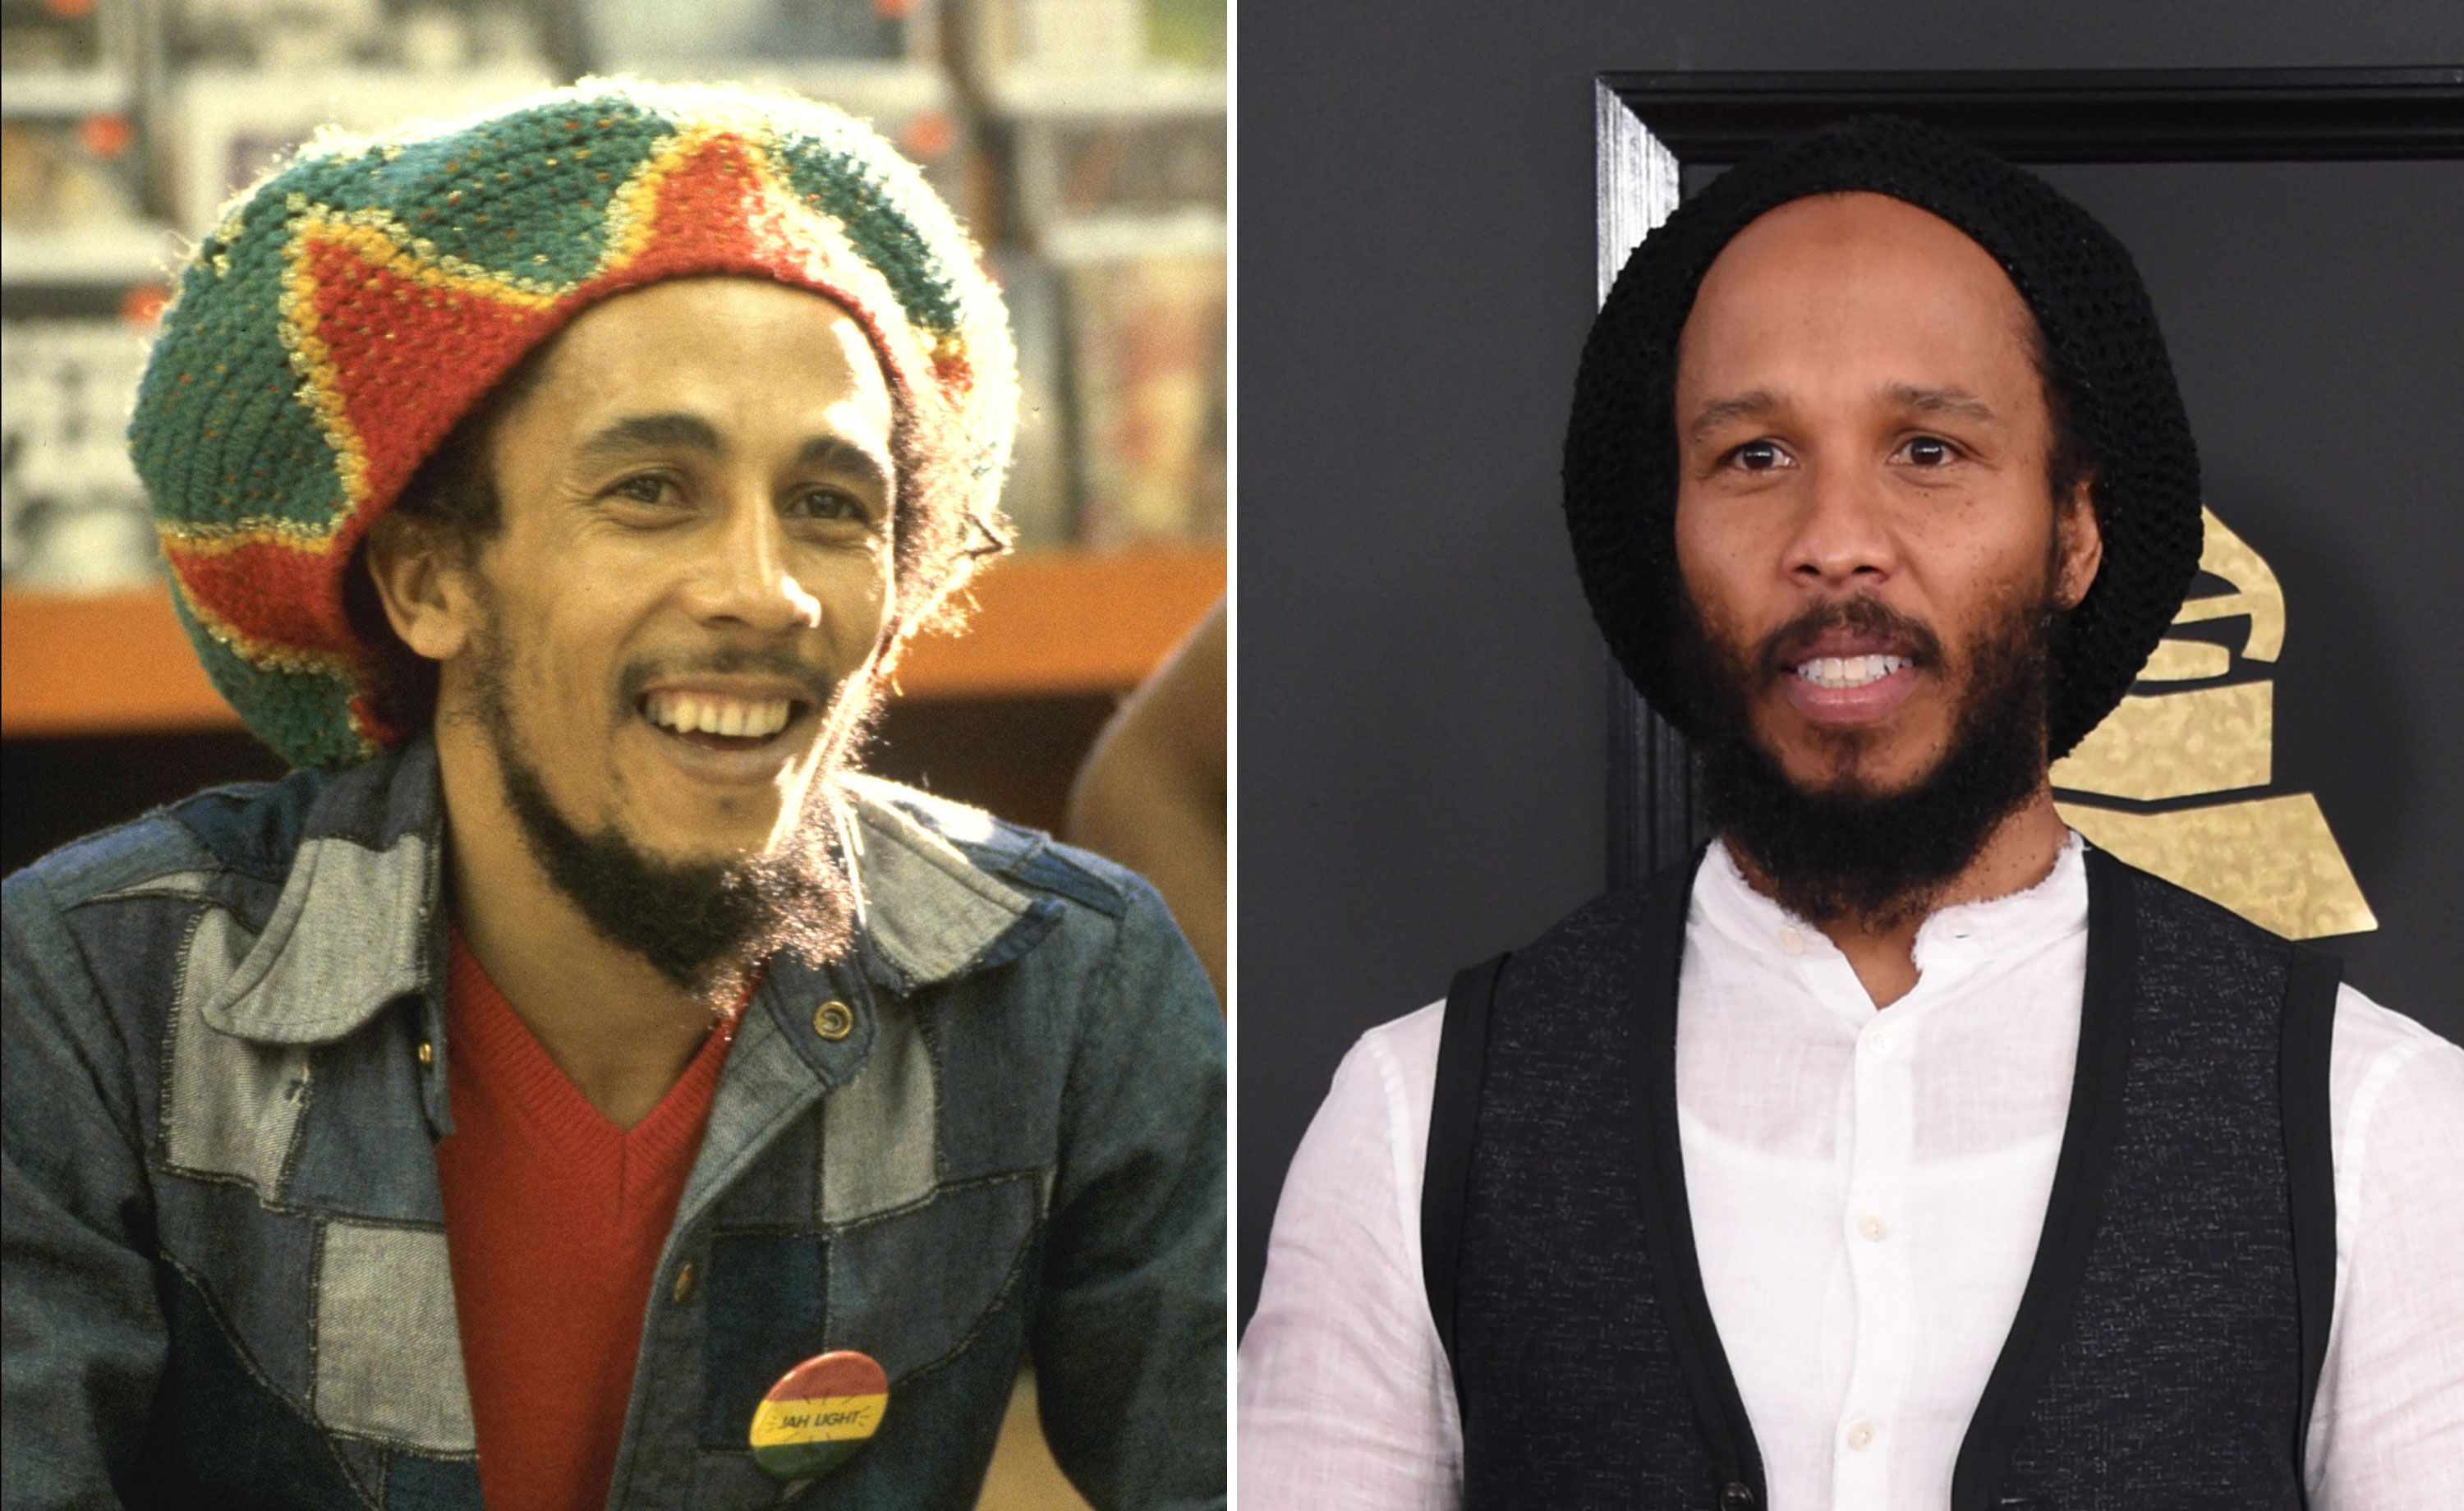 Bob Marley biopic movie in the works with son Ziggy Marley